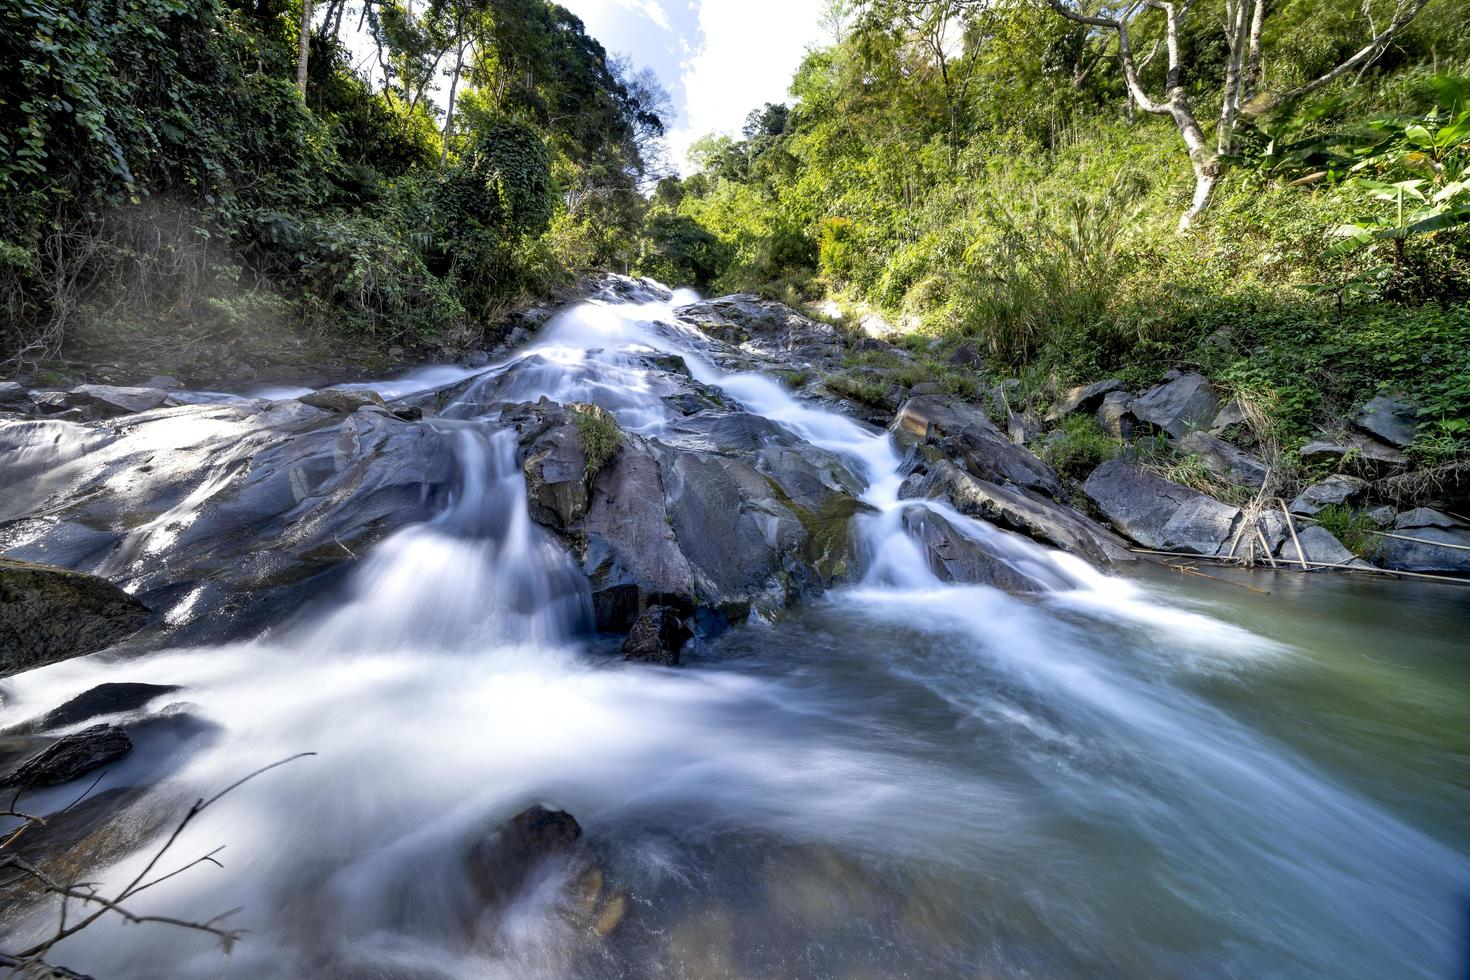 Time-lapse river and forest photo